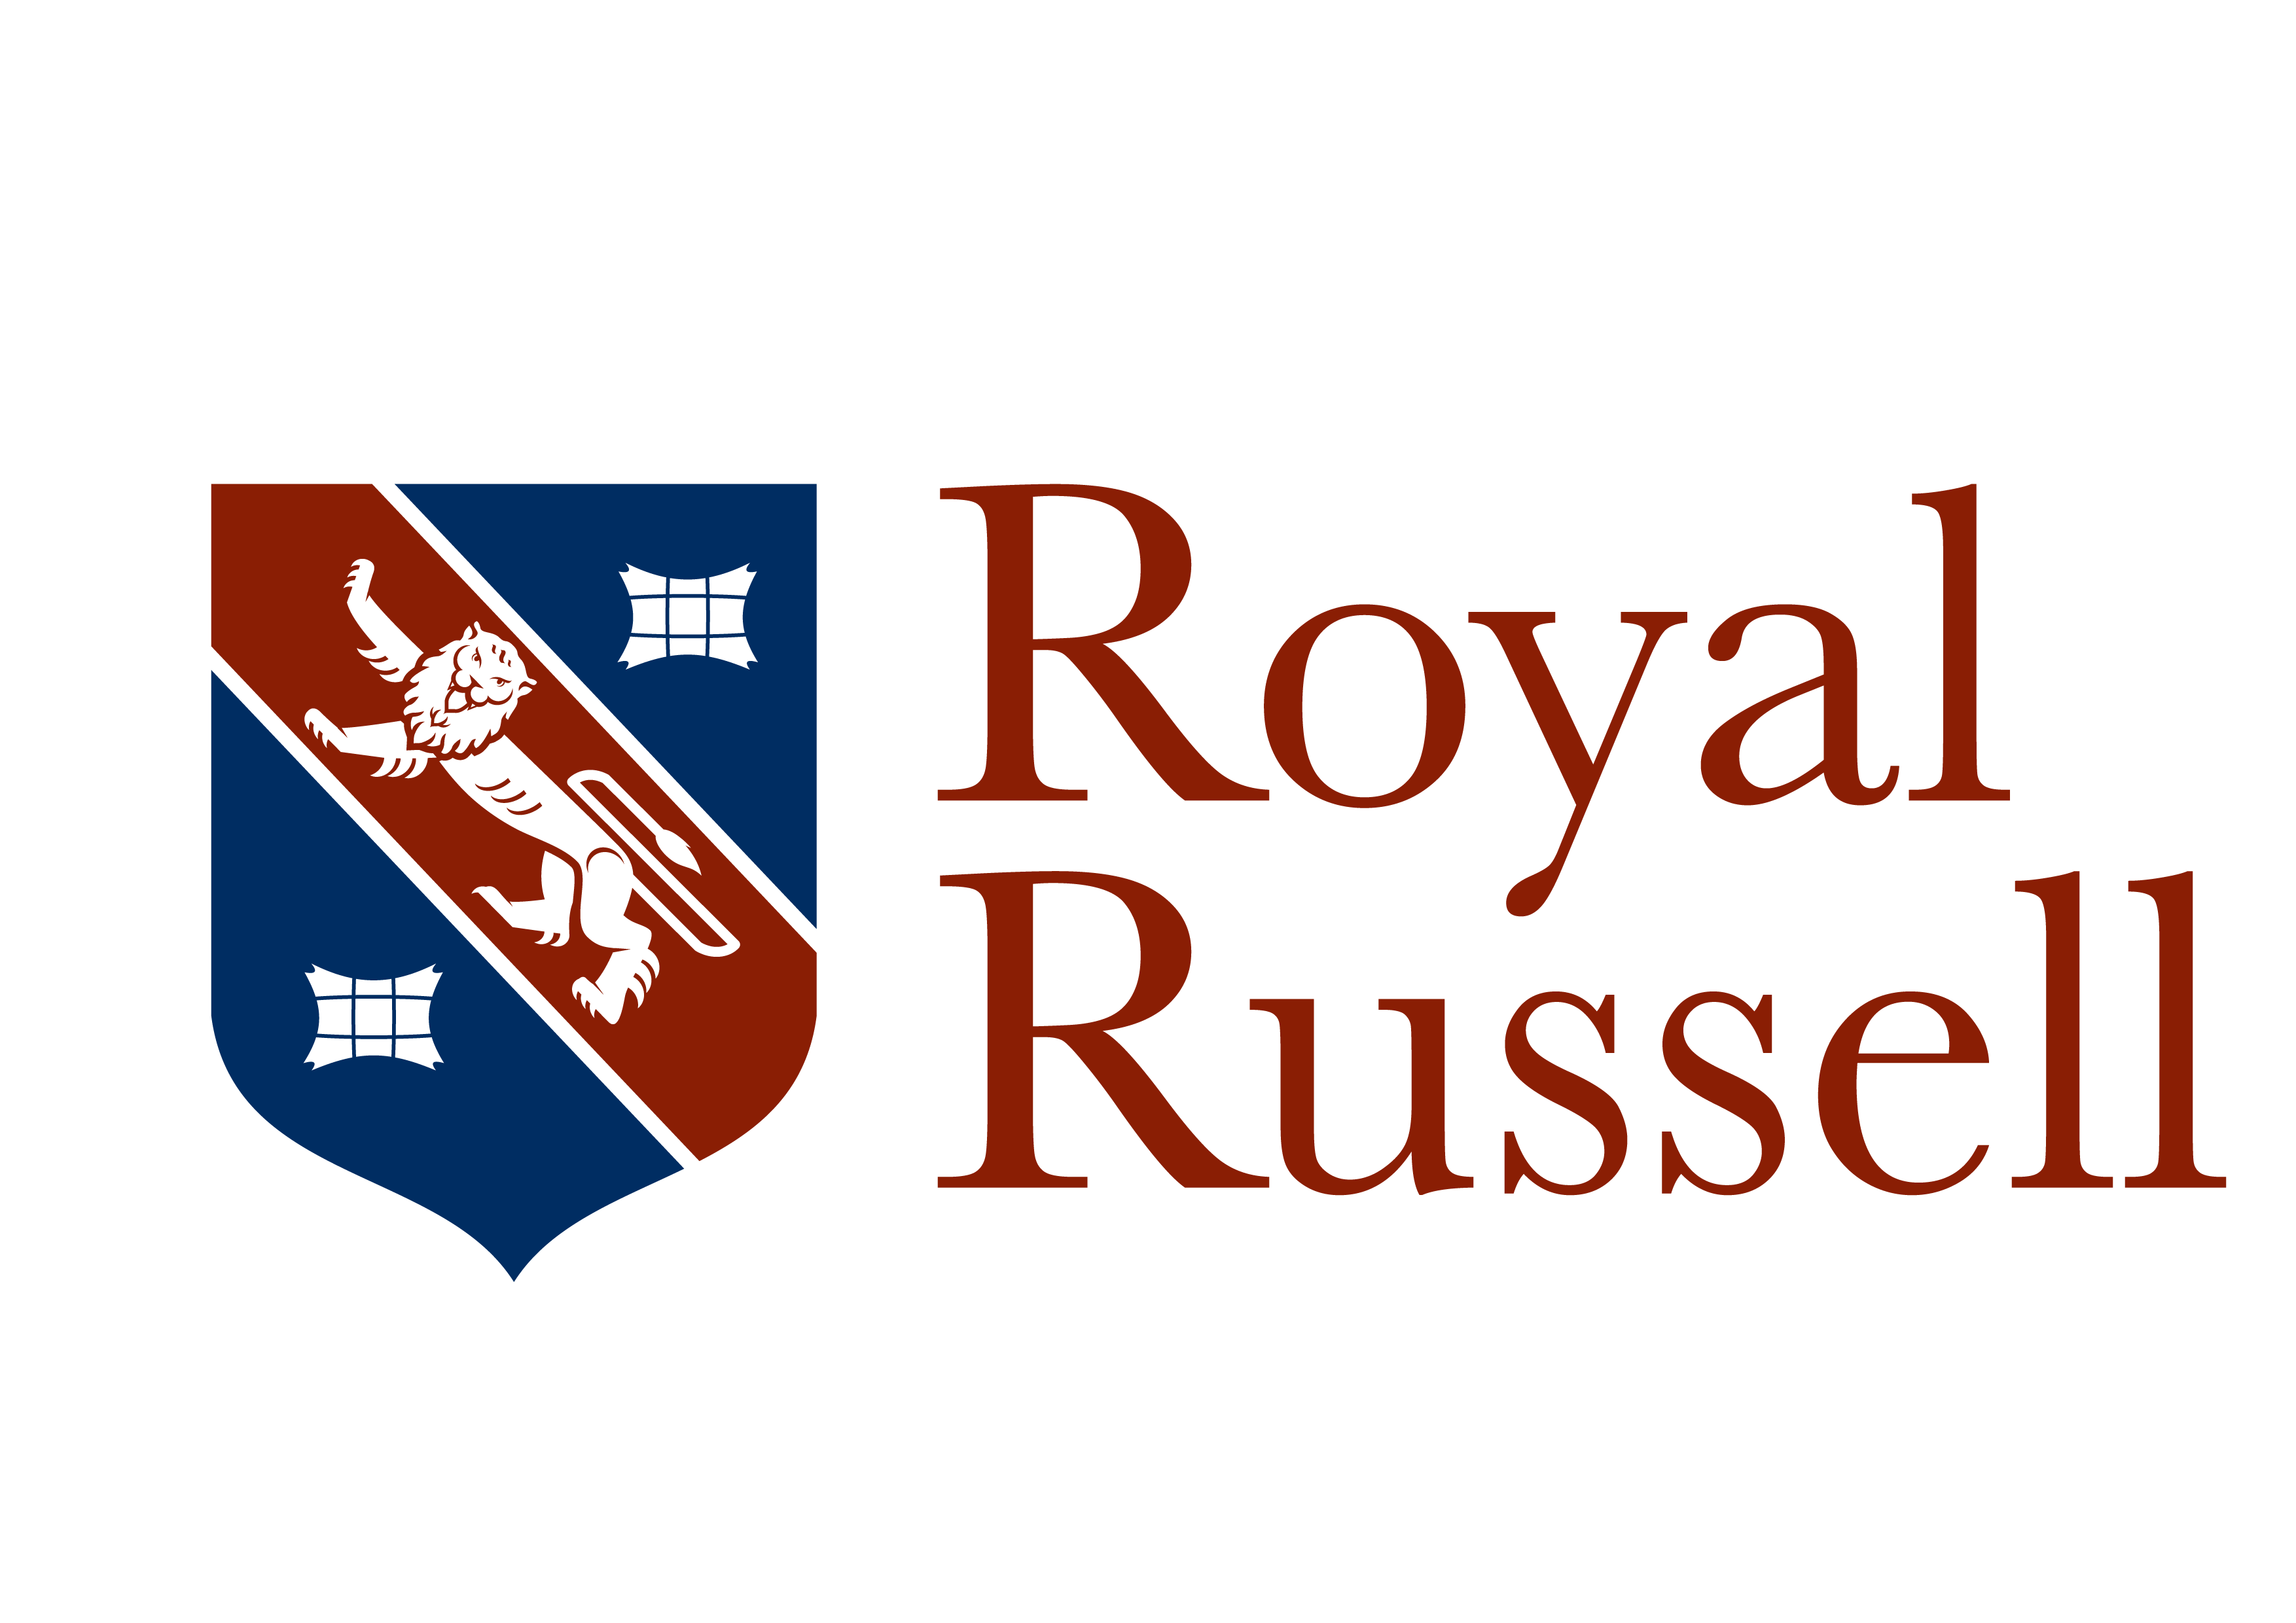 Royal Russell